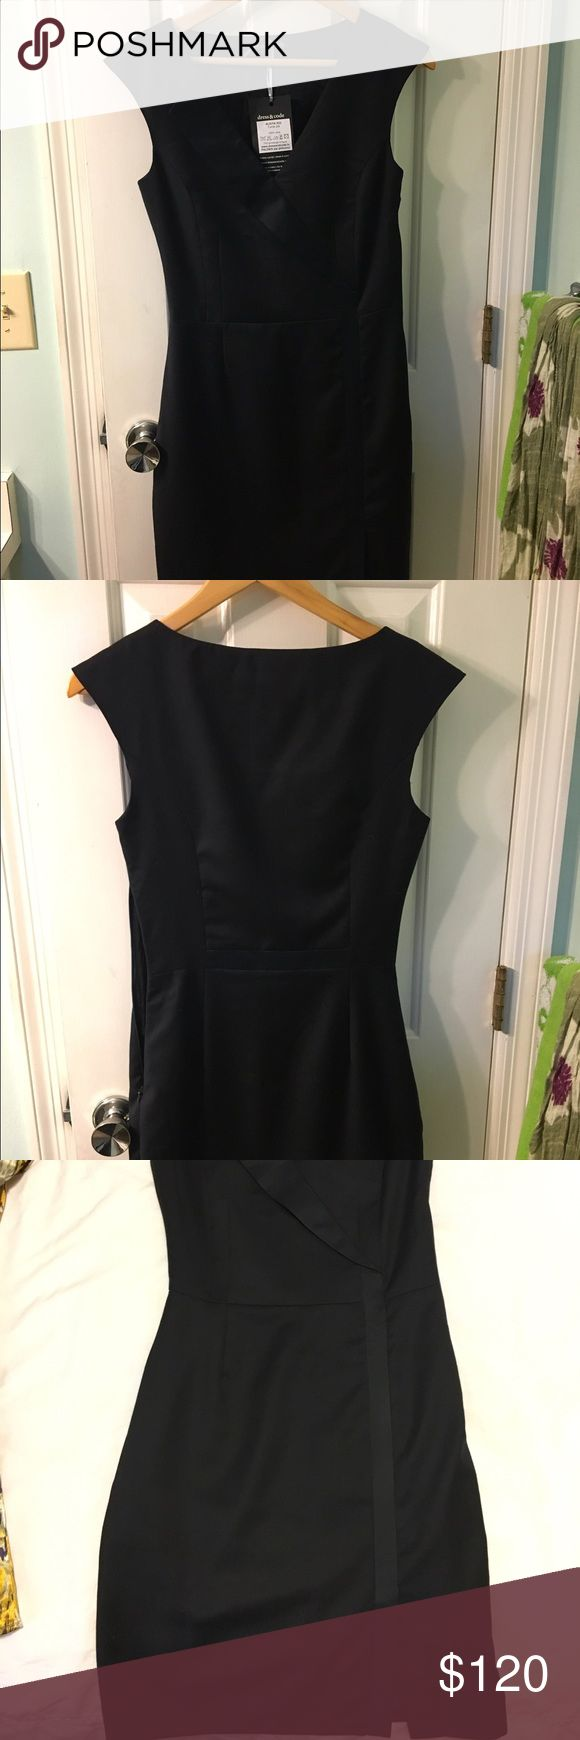 Navy blue dress 100% wool professional dress with slight front slit. Purchased from online boutique but the bust was a tad small (my size is 34C). New with tags, only tried on--never worn. dress & code Dresses